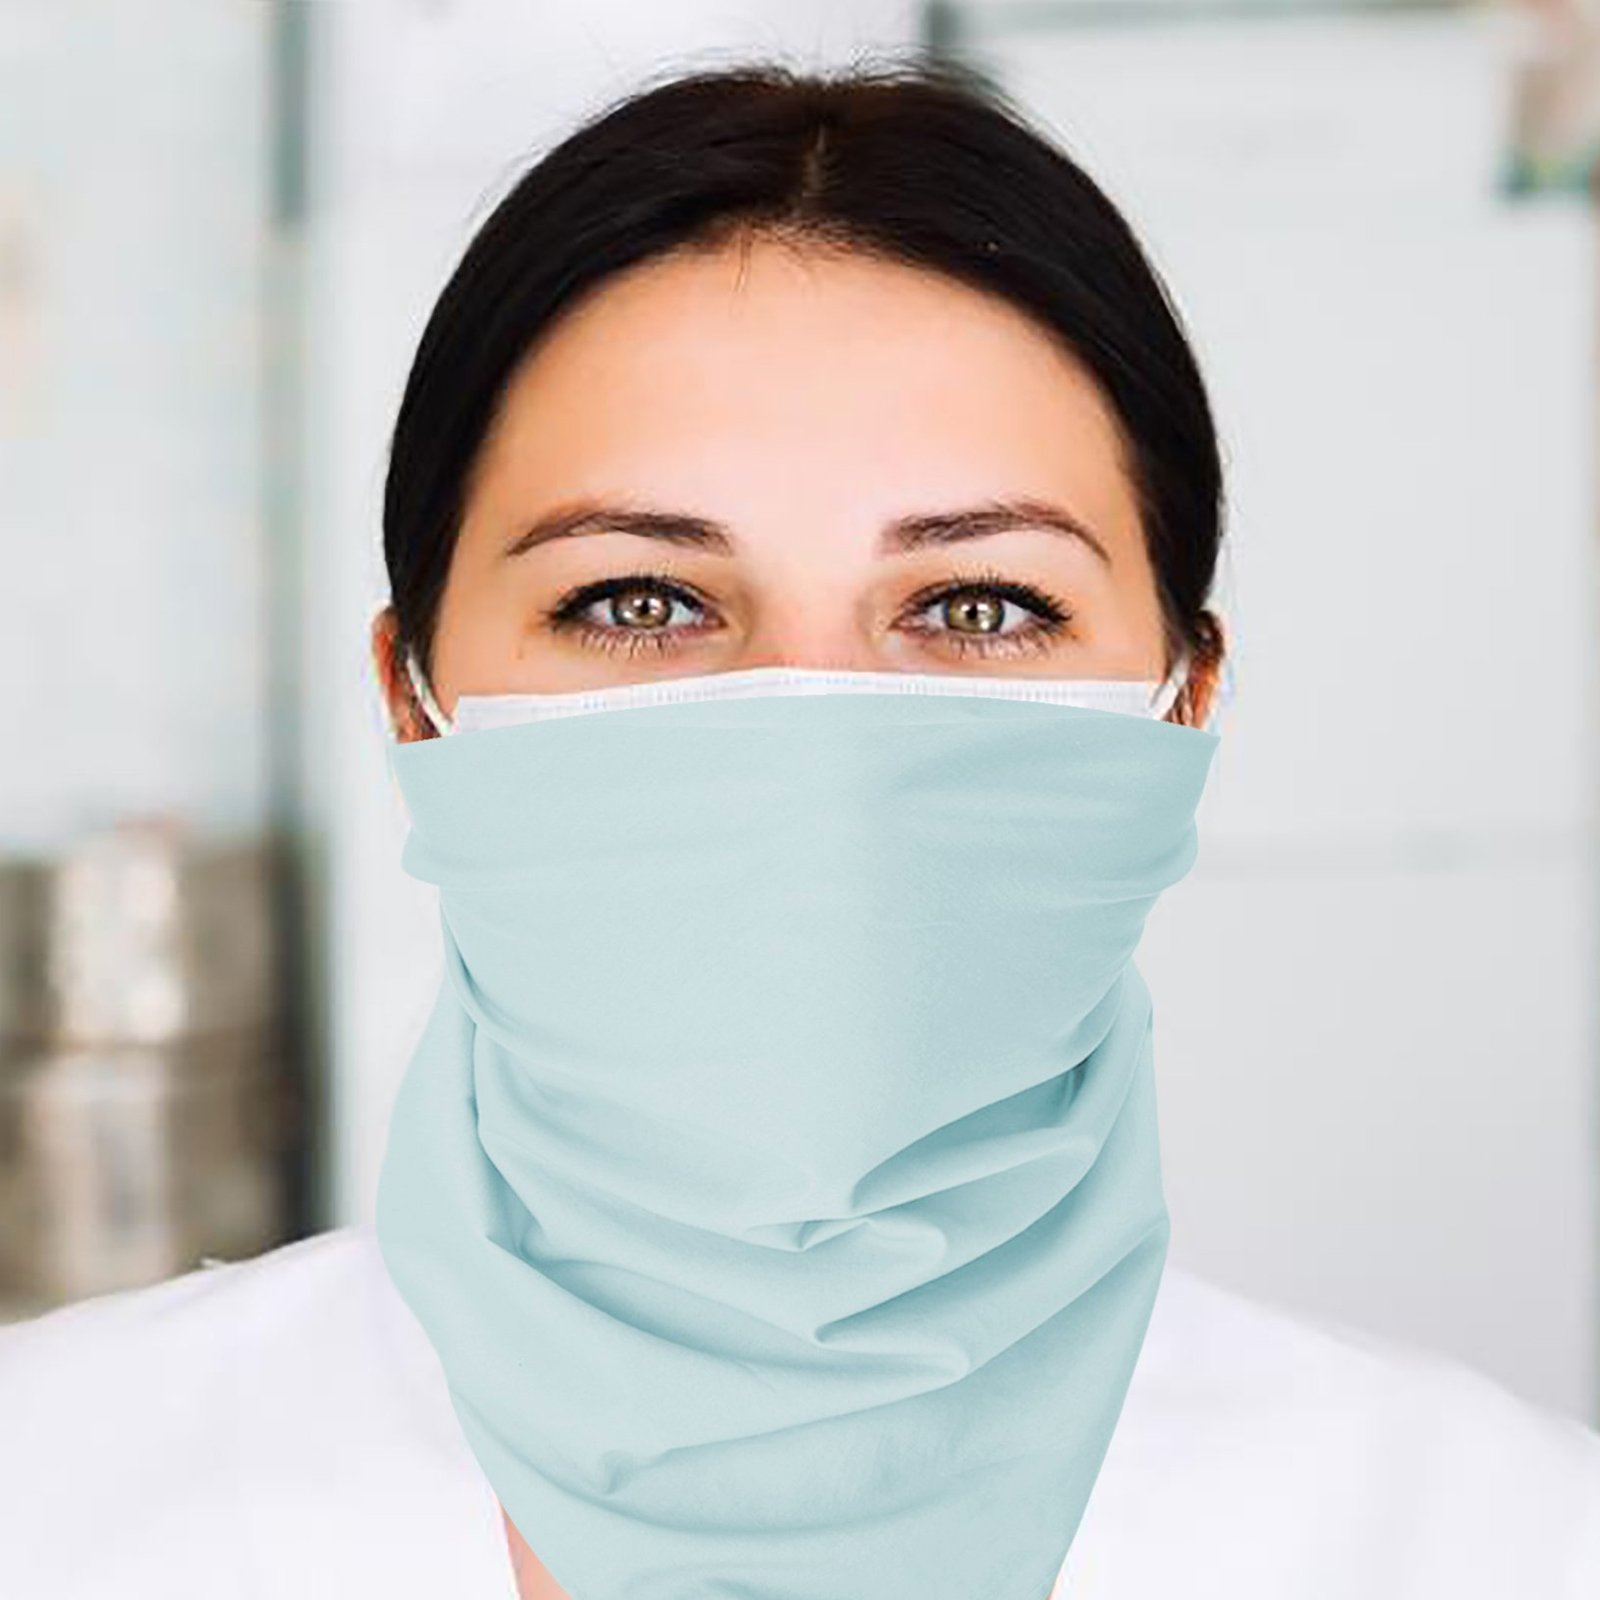 A nurse wearing a flat bandana around her face